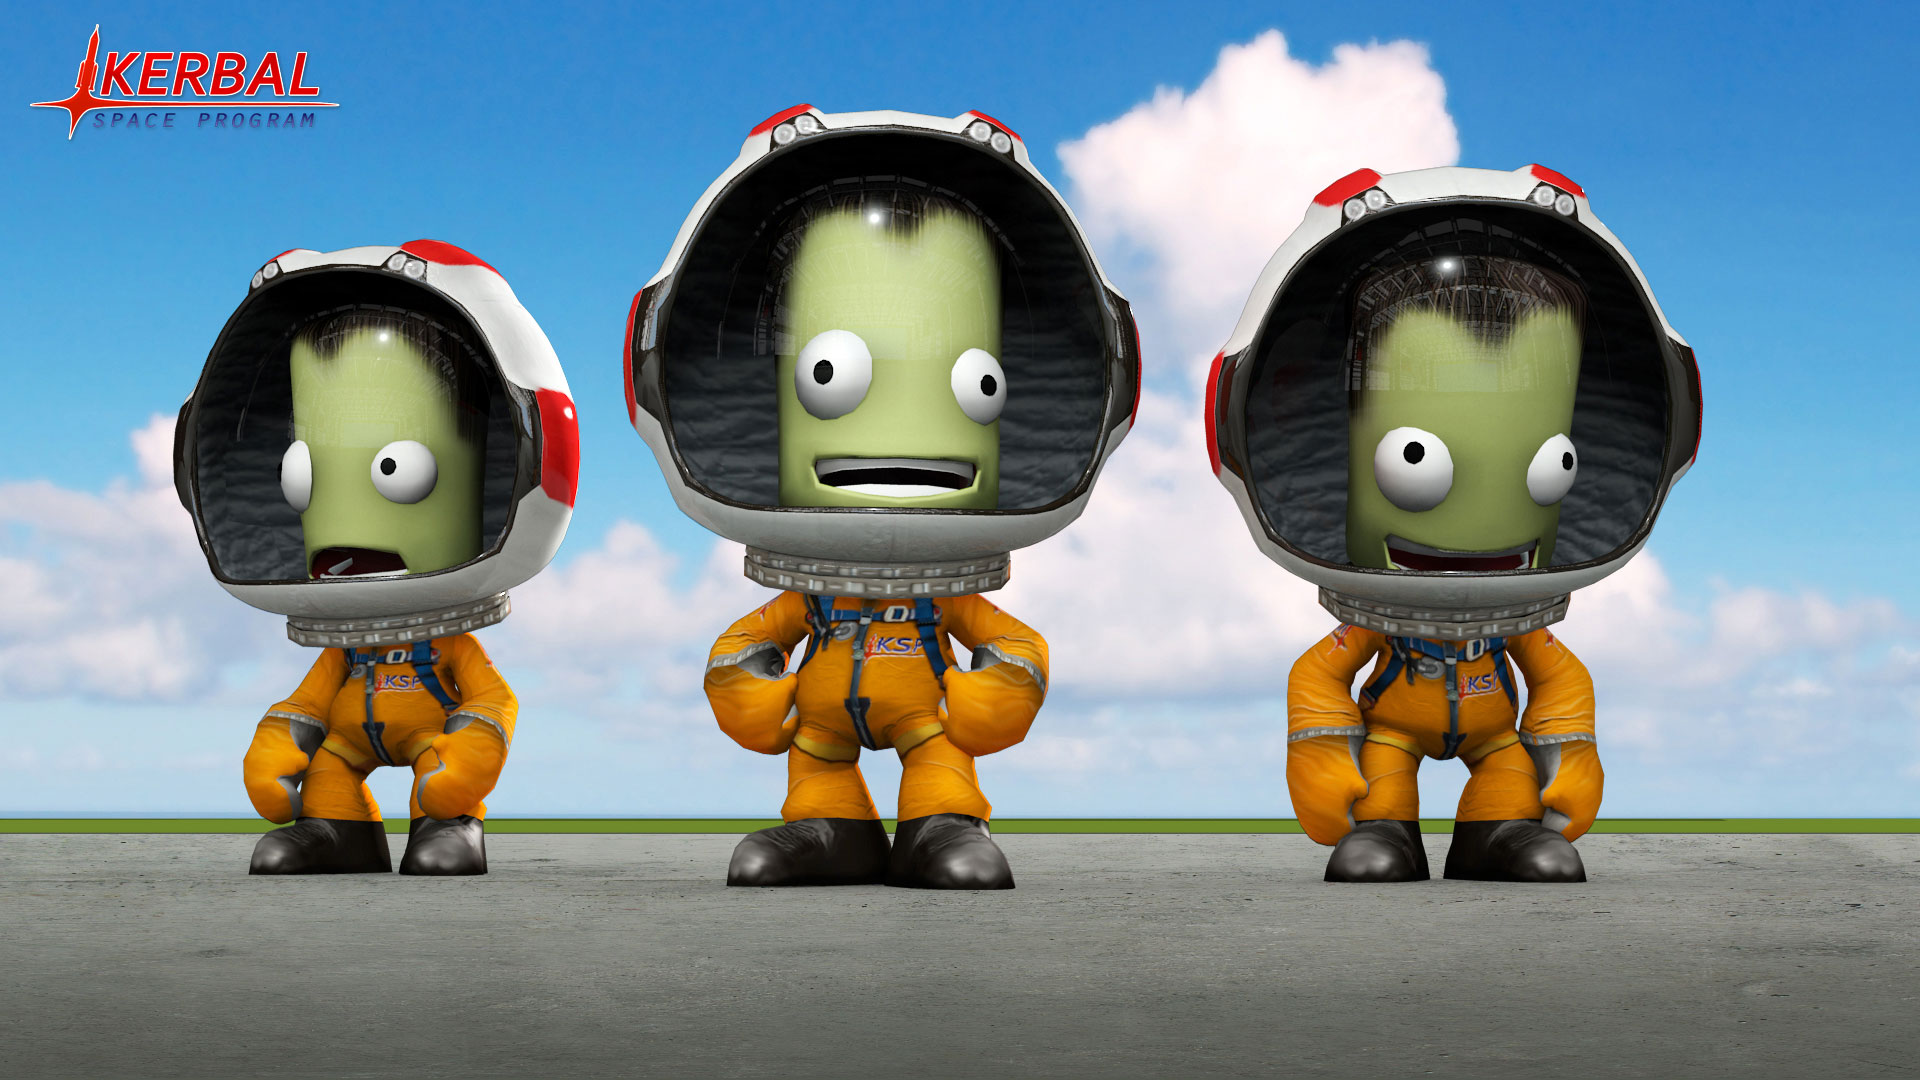 Jebediah, Bob, Bill, and Valentina are the Original Four astronauts in Kerbal, but you can create your own too. Credit: Squad, Monkey Squad S.A de C.V.